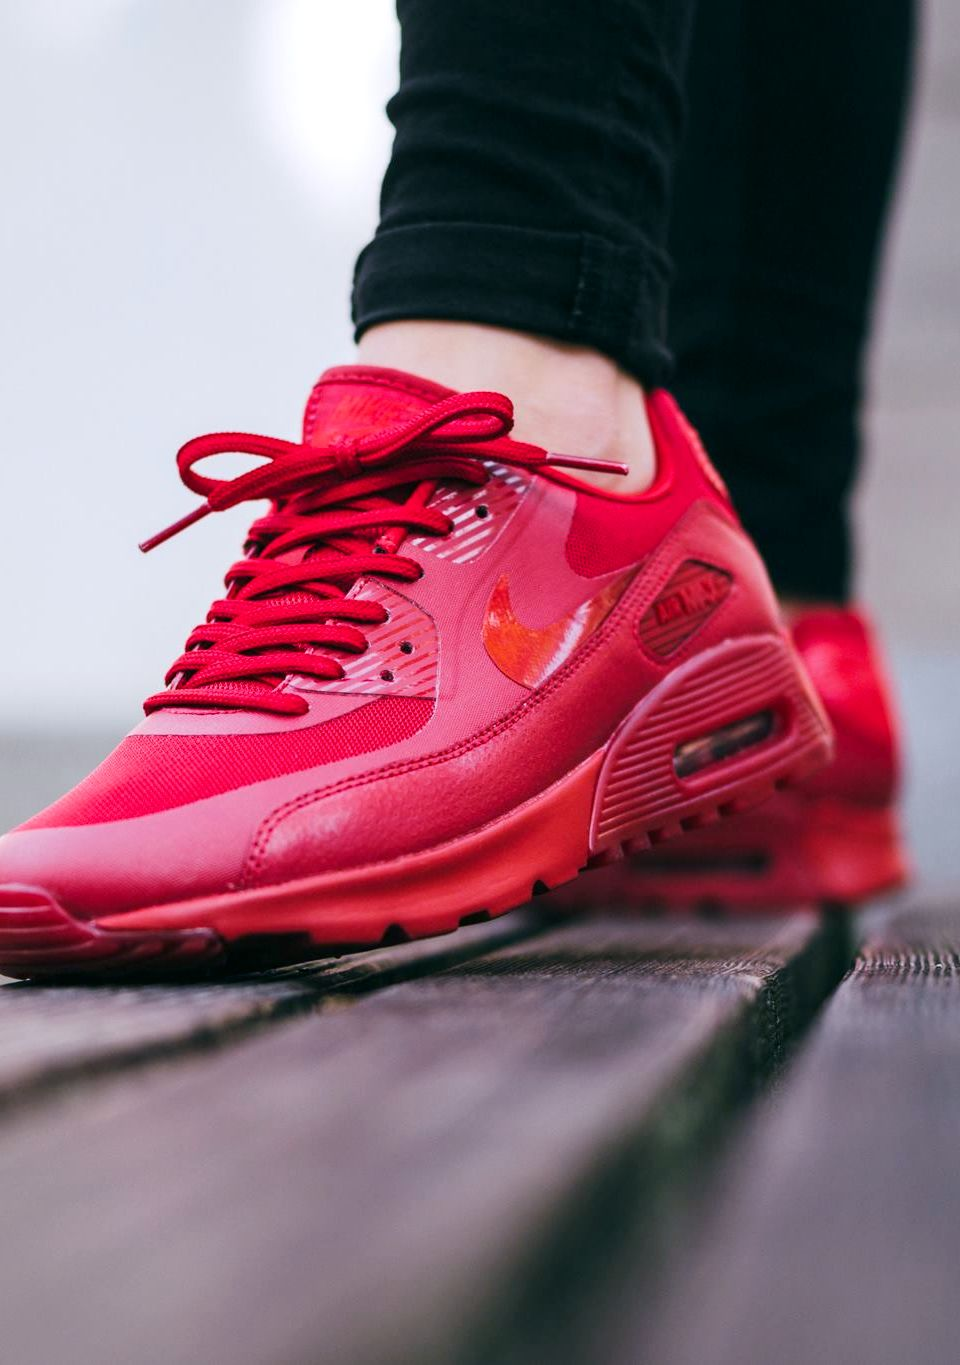 Nike Wmns Air Max 90 Ultra Essential Gym Red Gym Red